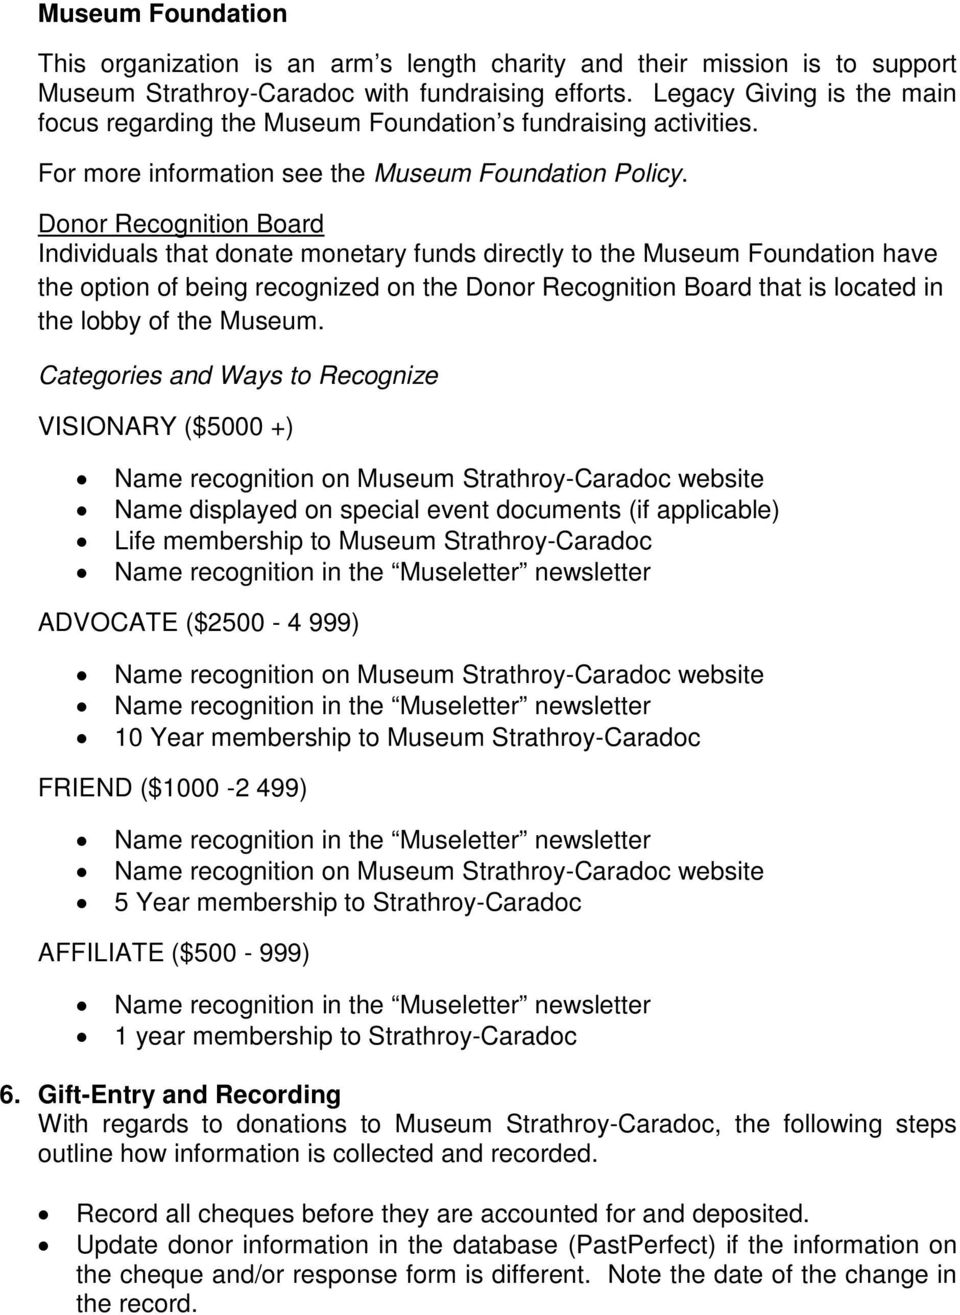 Donor Recognition Board Individuals that donate monetary funds directly to the Museum Foundation have the option of being recognized on the Donor Recognition Board that is located in the lobby of the